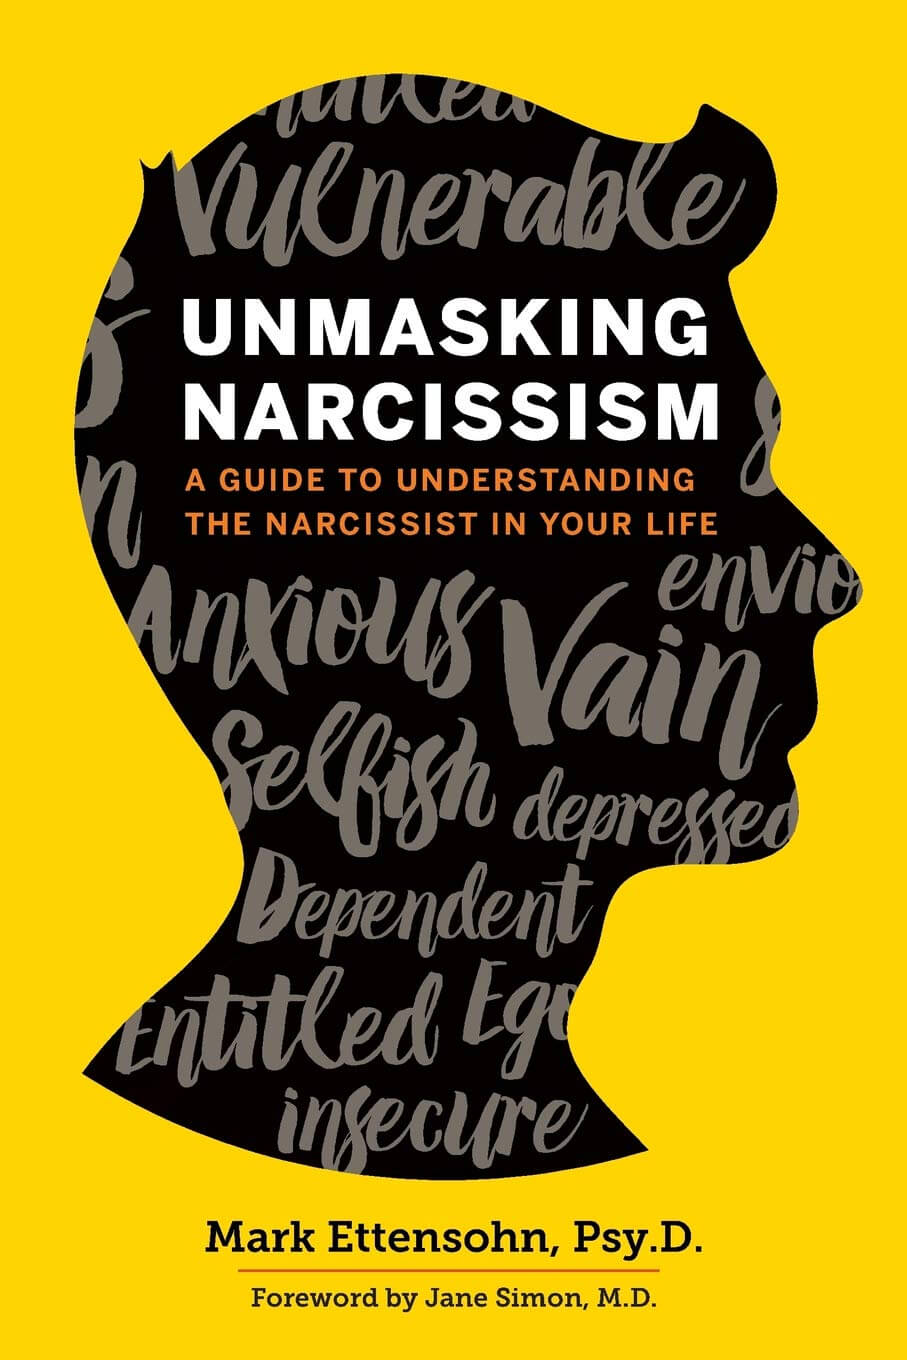 How to deal with a narcissist person,how to deal with a narcissist